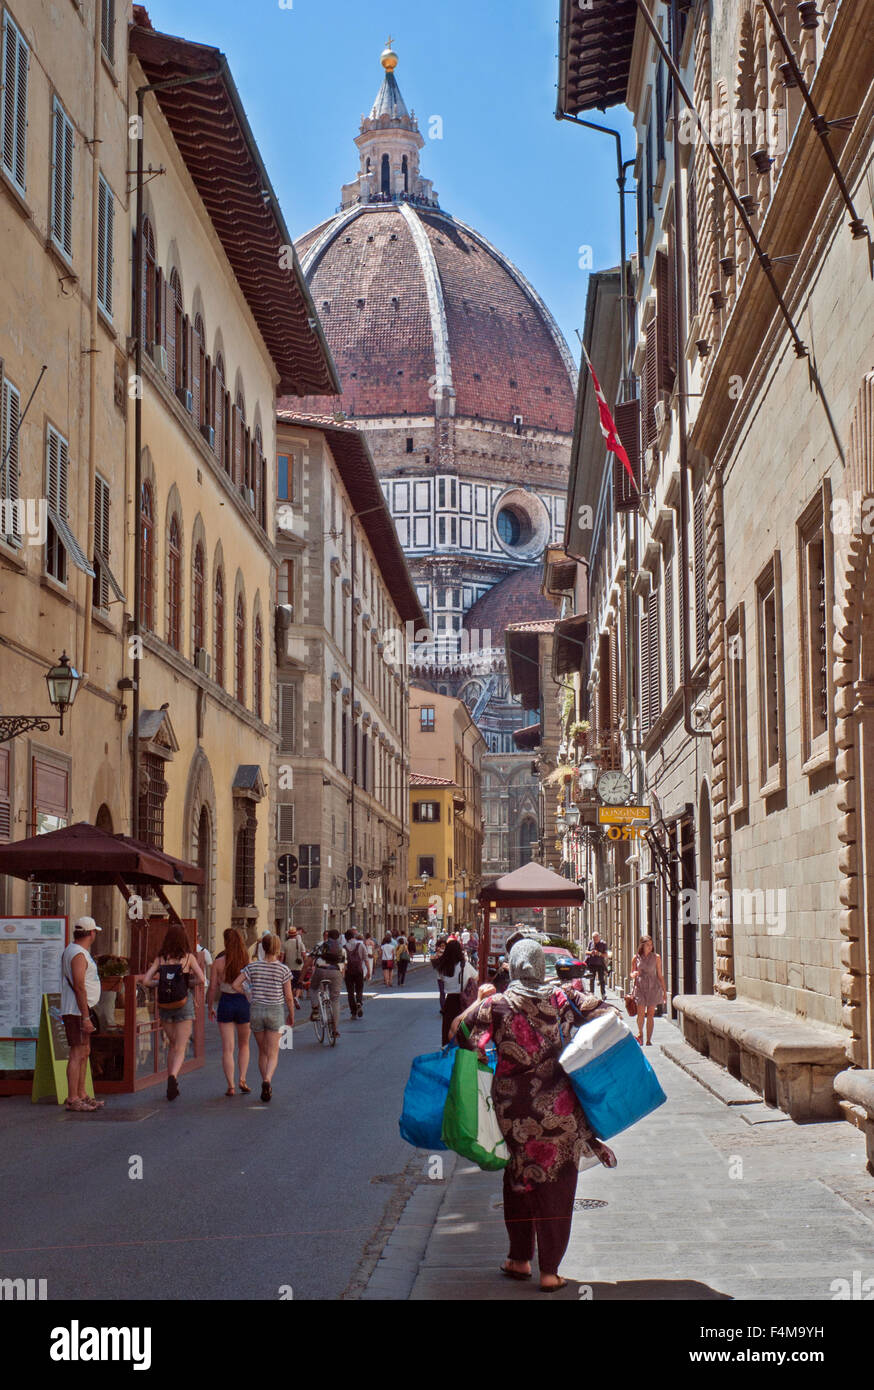 street view of Cathedral of Saint Mary of the Flowers or Il Duomo di Firenze - Stock Image